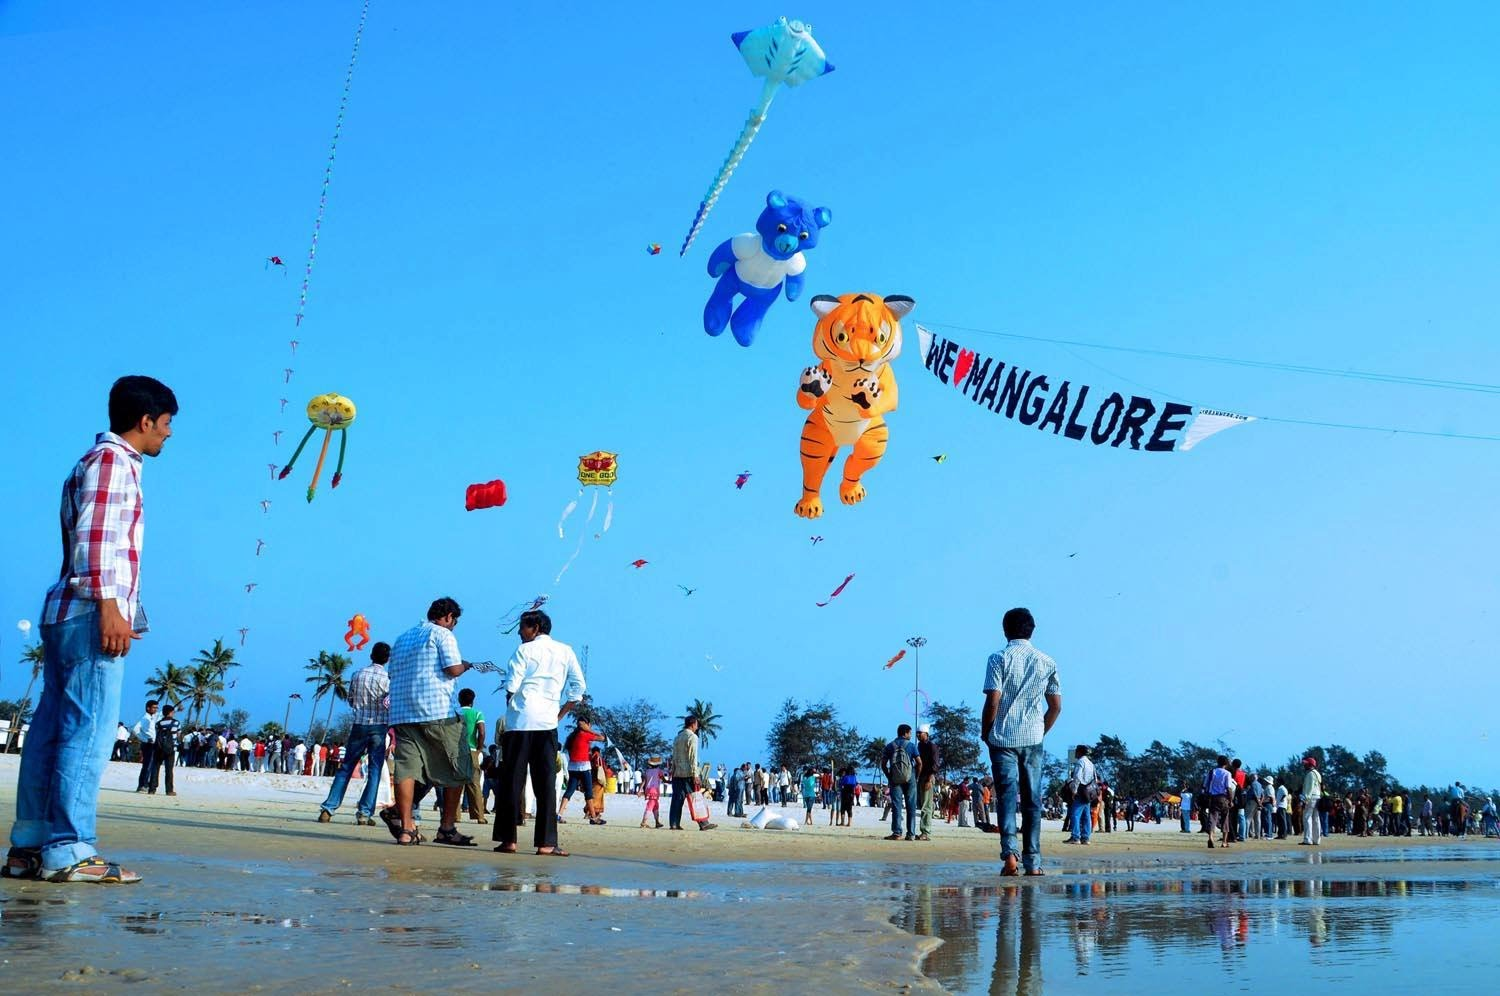 Best travel websites in Mangalore Close to the New Mangalore port is the Panambur beach, one of the most loved, pristine, clean beach in the city. The blue skies, sea and sands, get a dash of color during April, as the beach hosts a kite festival.